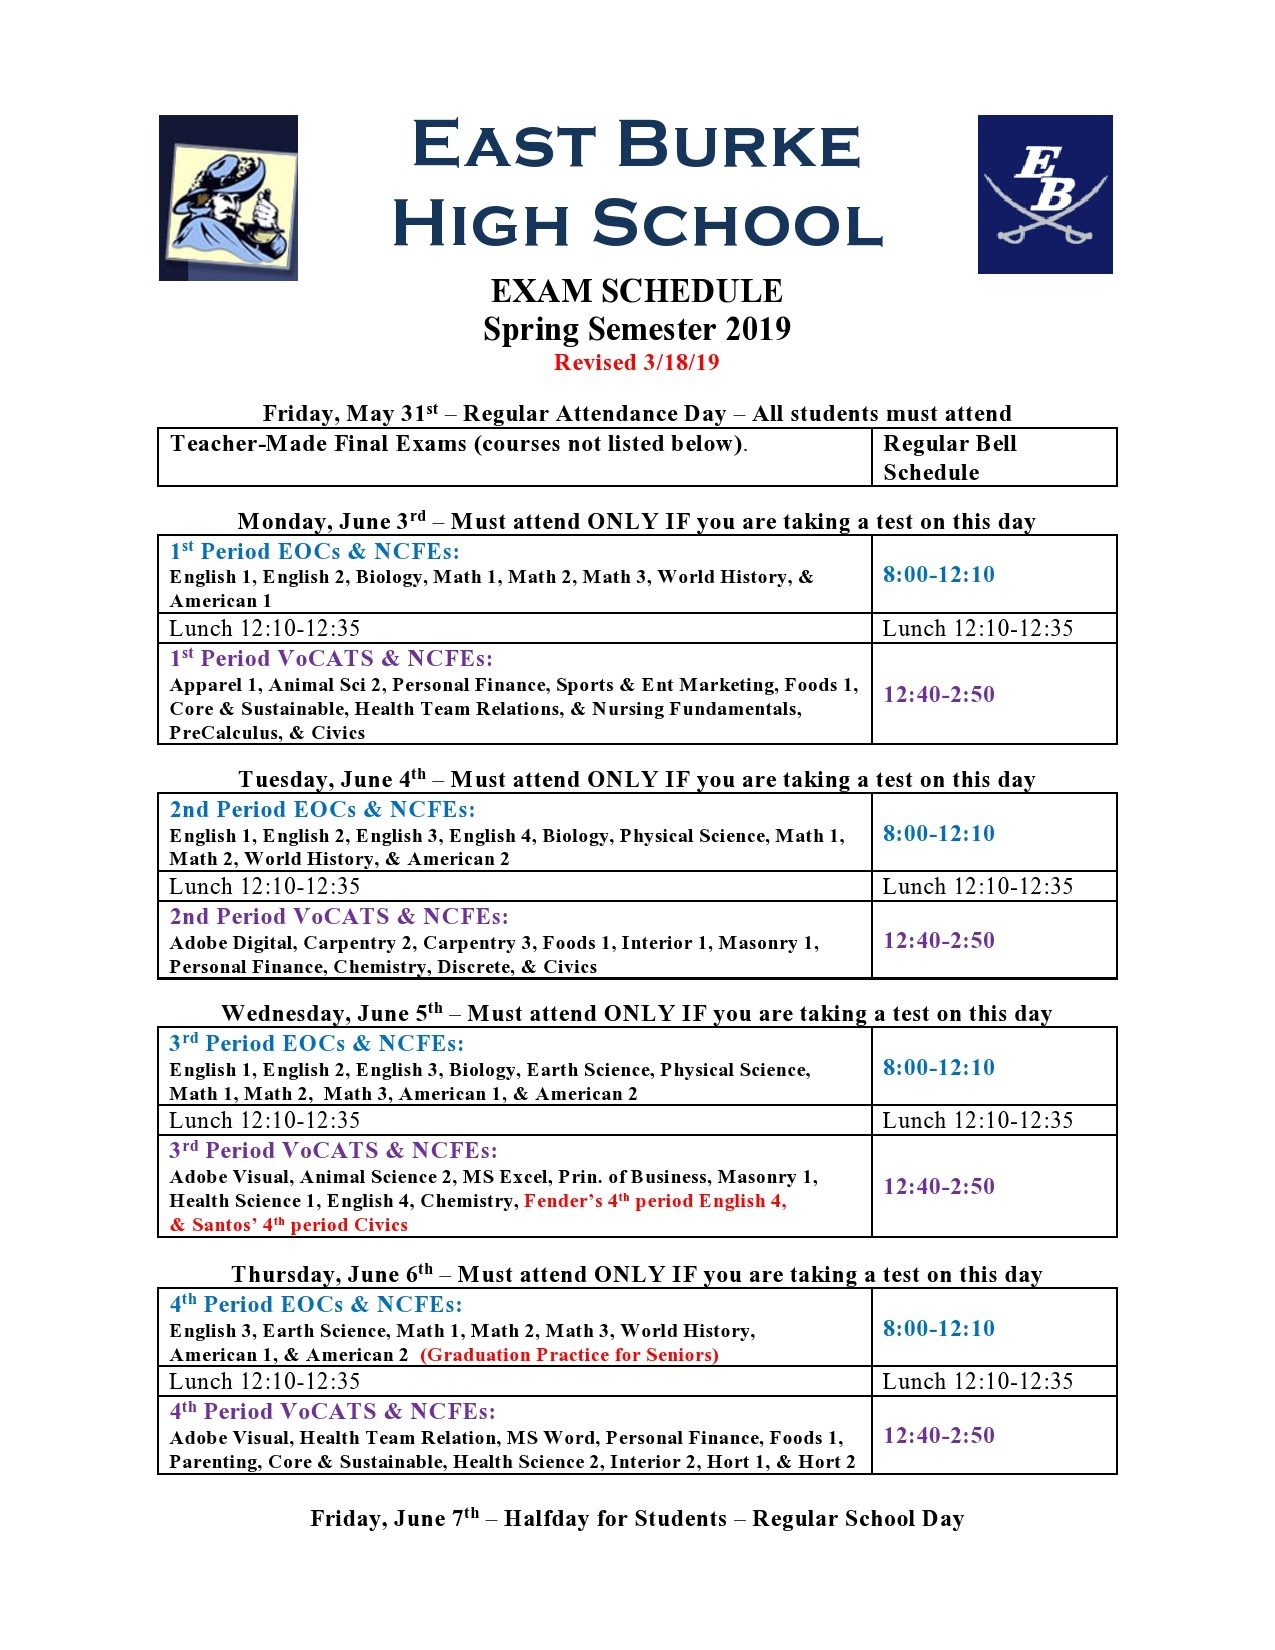 Uncg Final Exam Schedule Spring 2020.Announcements East Burke High School